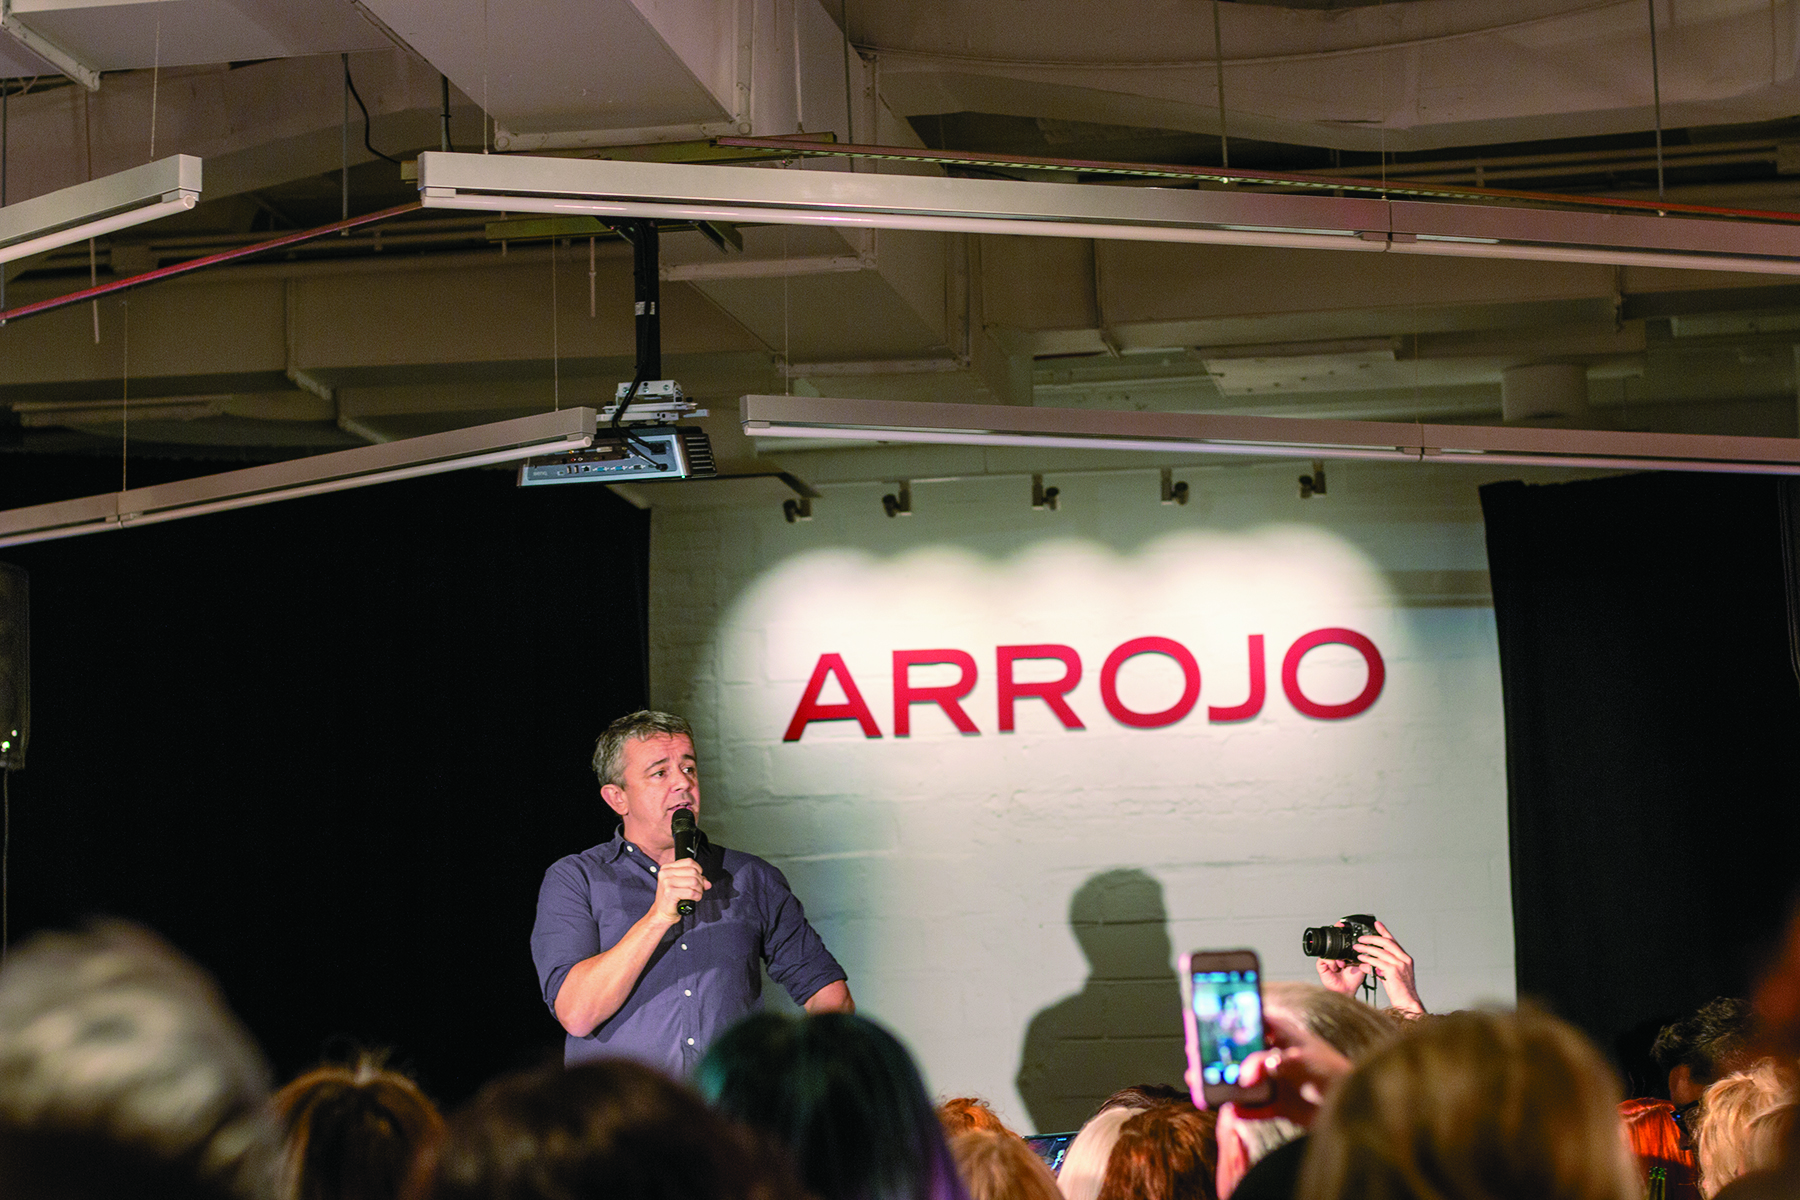 Goldwell hosted an opening night welcome party at Arrojo Studio for Intercoiffure members.